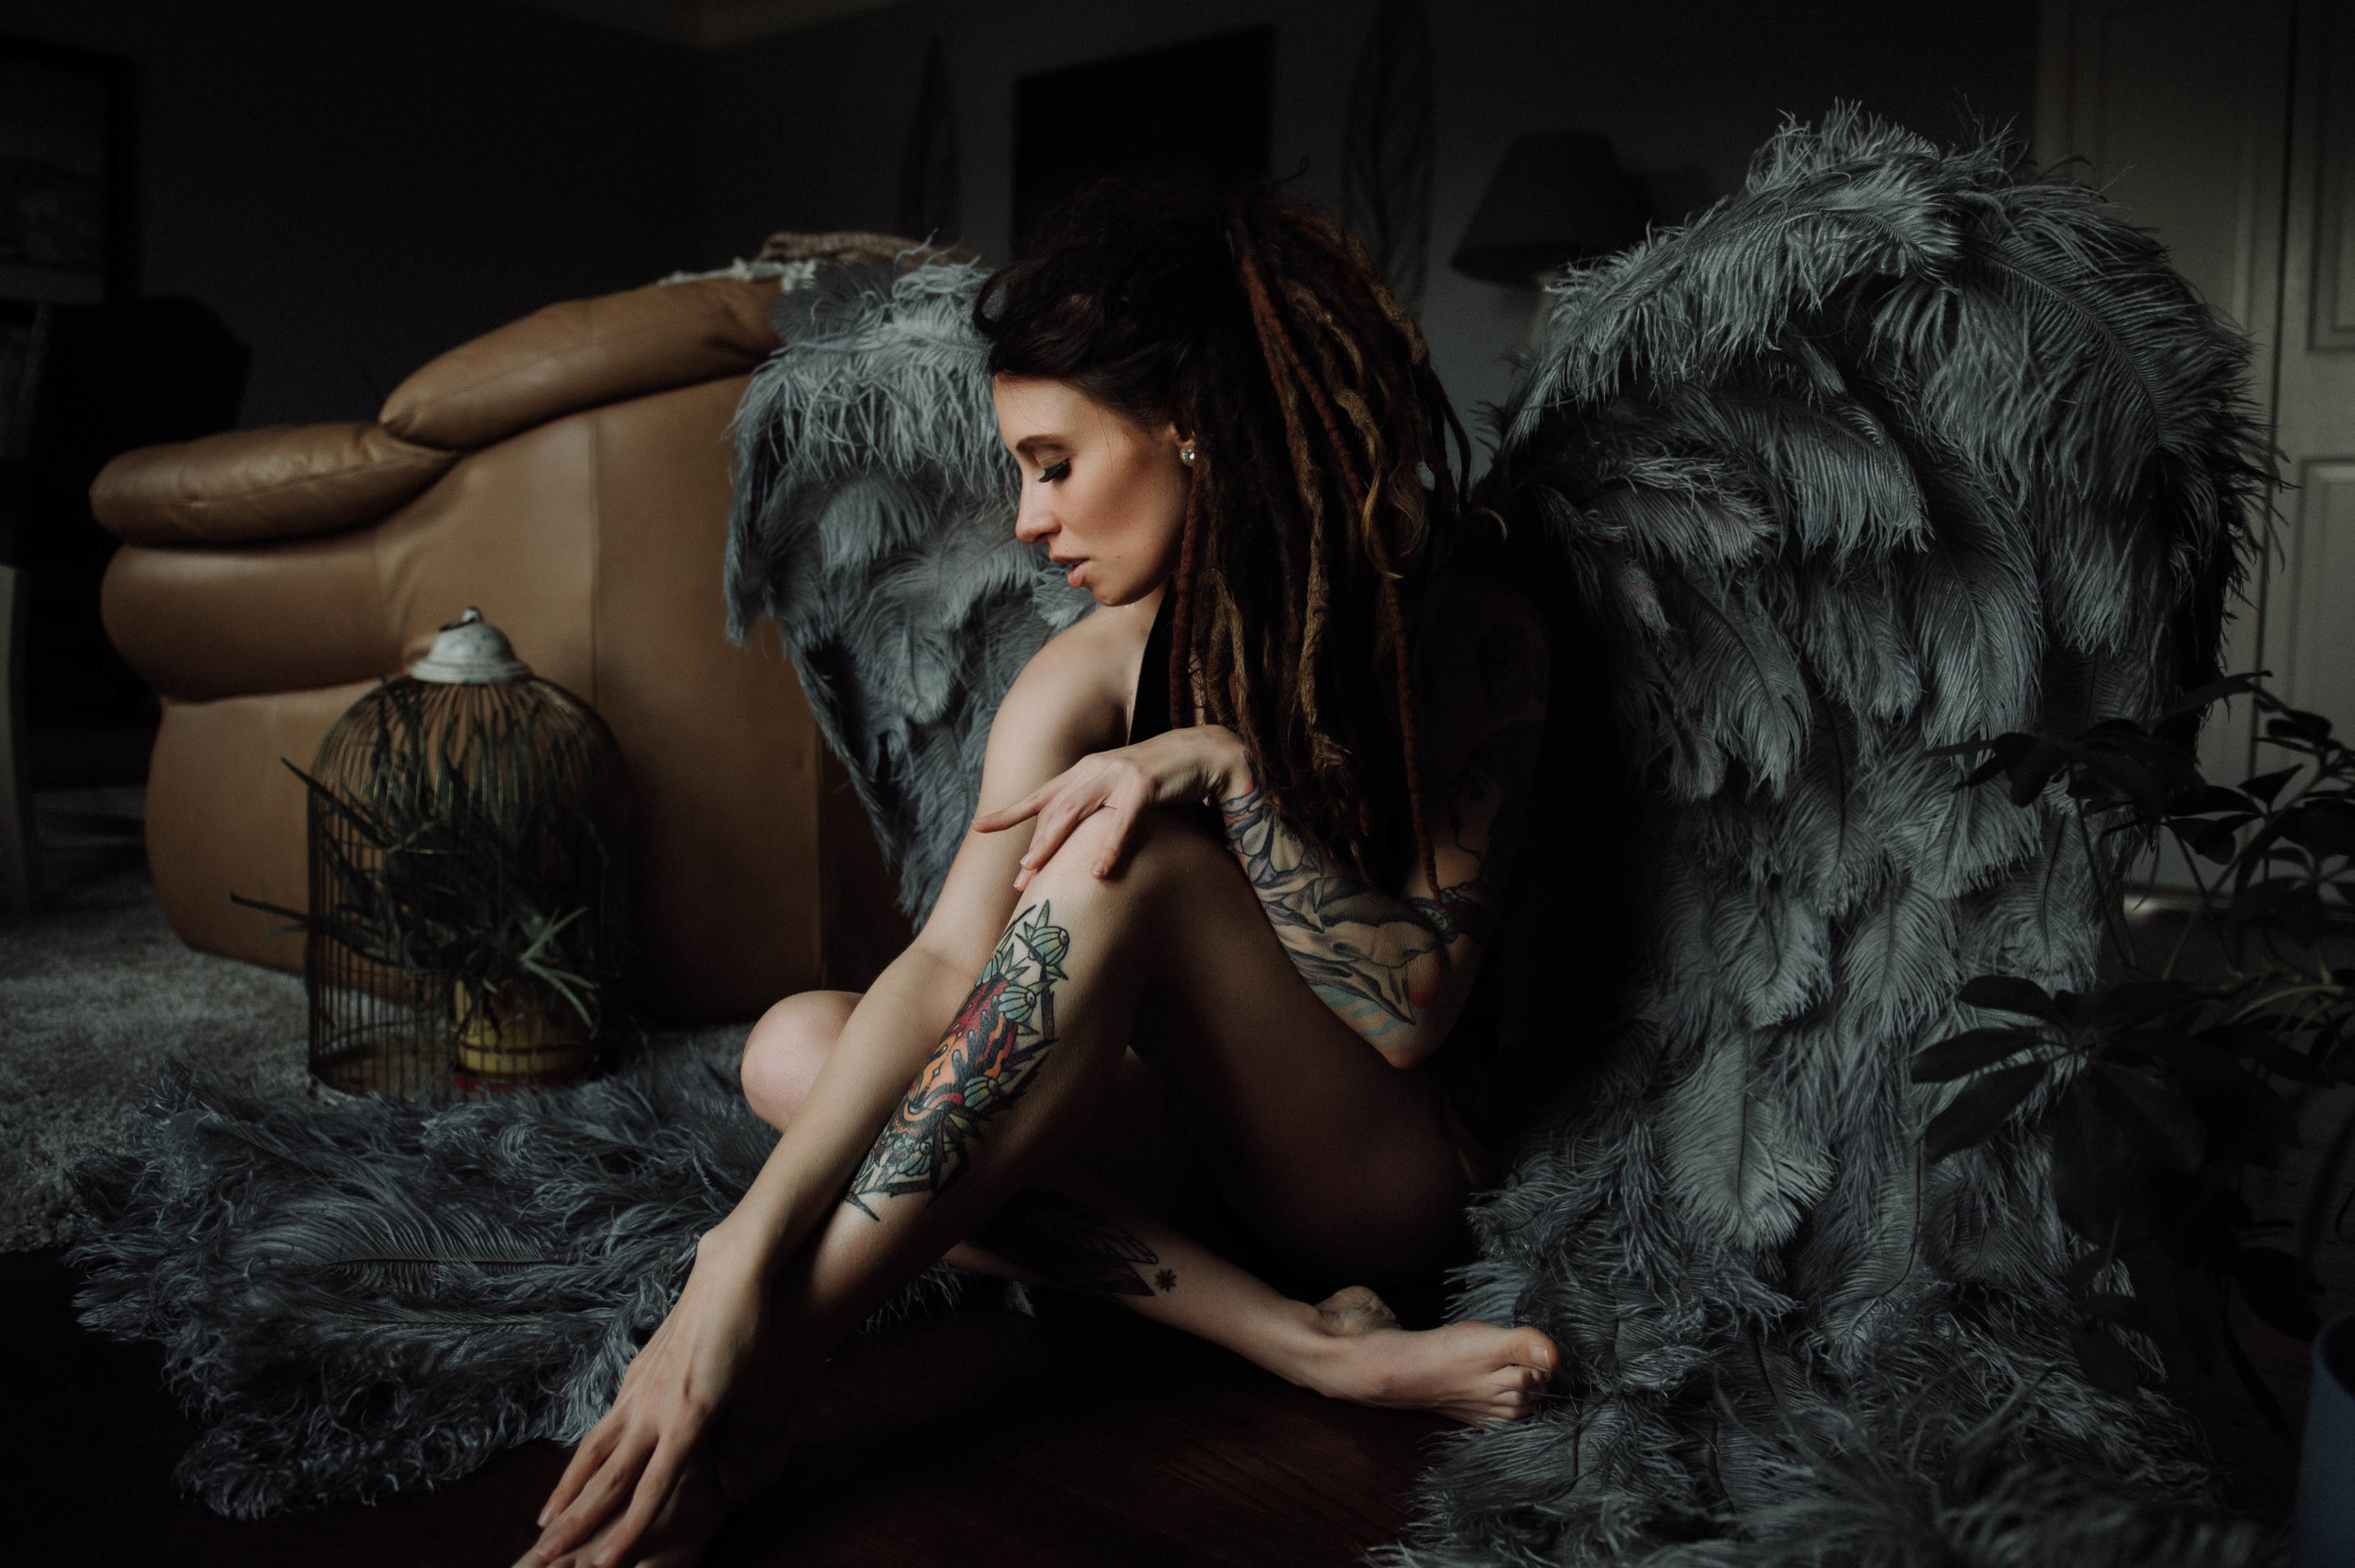 Tattooed model with dreads wearing gray angel wings  boudoir photography new york city bedroom